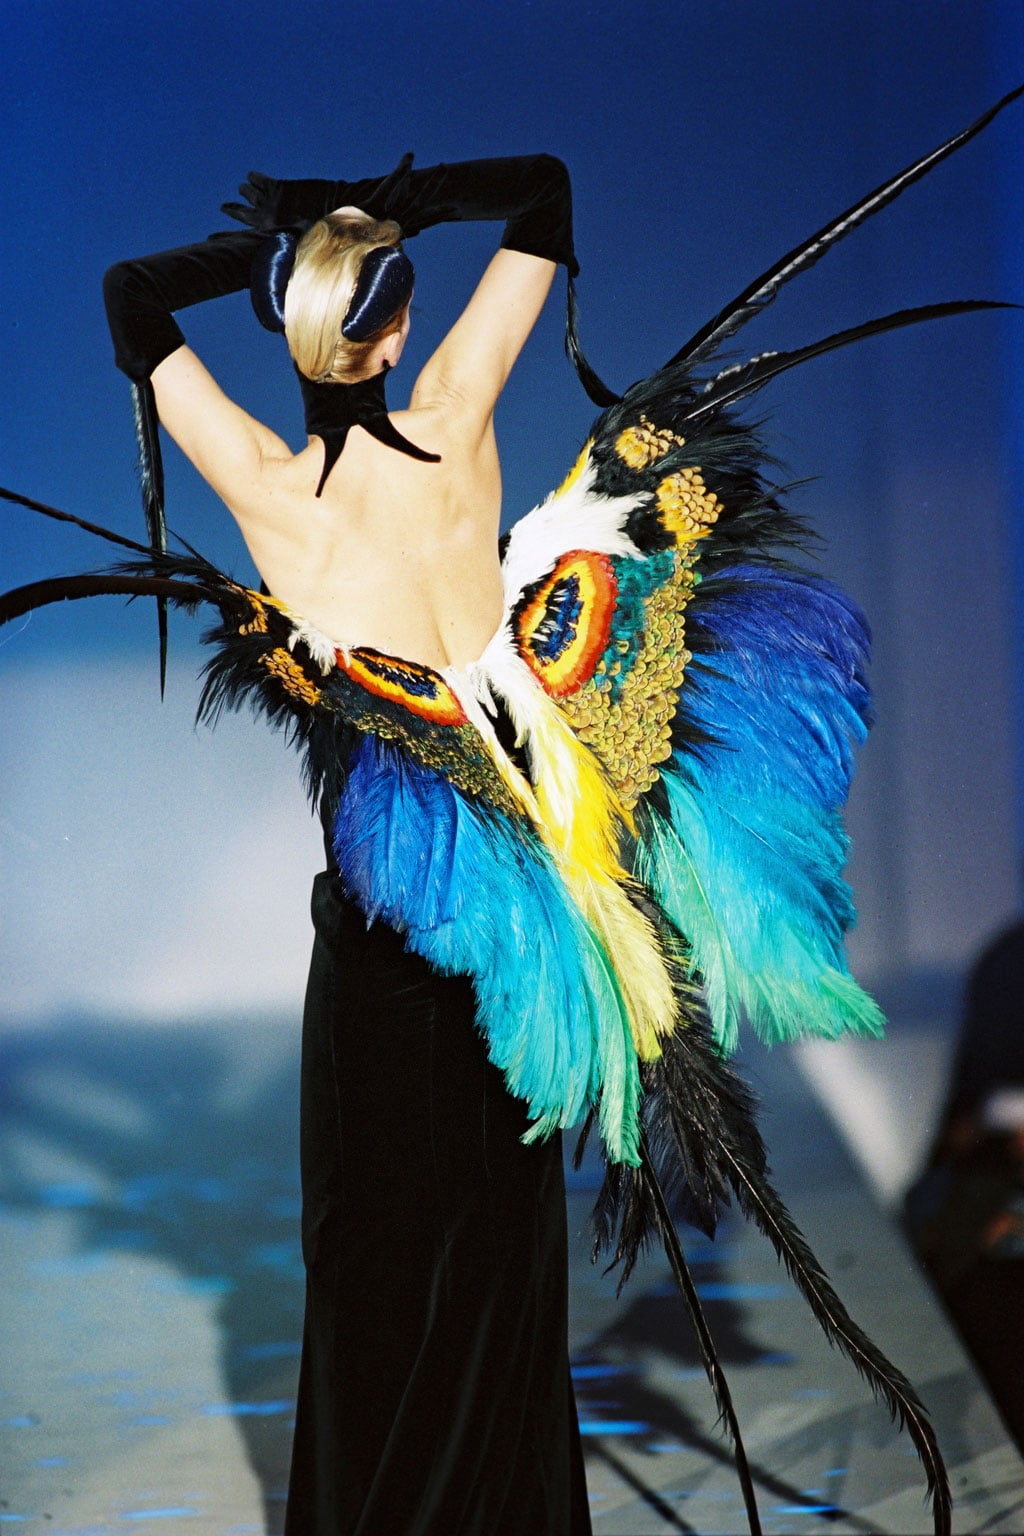 4. Birds of Paradise: Plumes and Feathers in Fashion, 25 Oct 2014 – 19 Apr 2015 - The Bowes Museum, County Durham. Free with National Art Pass